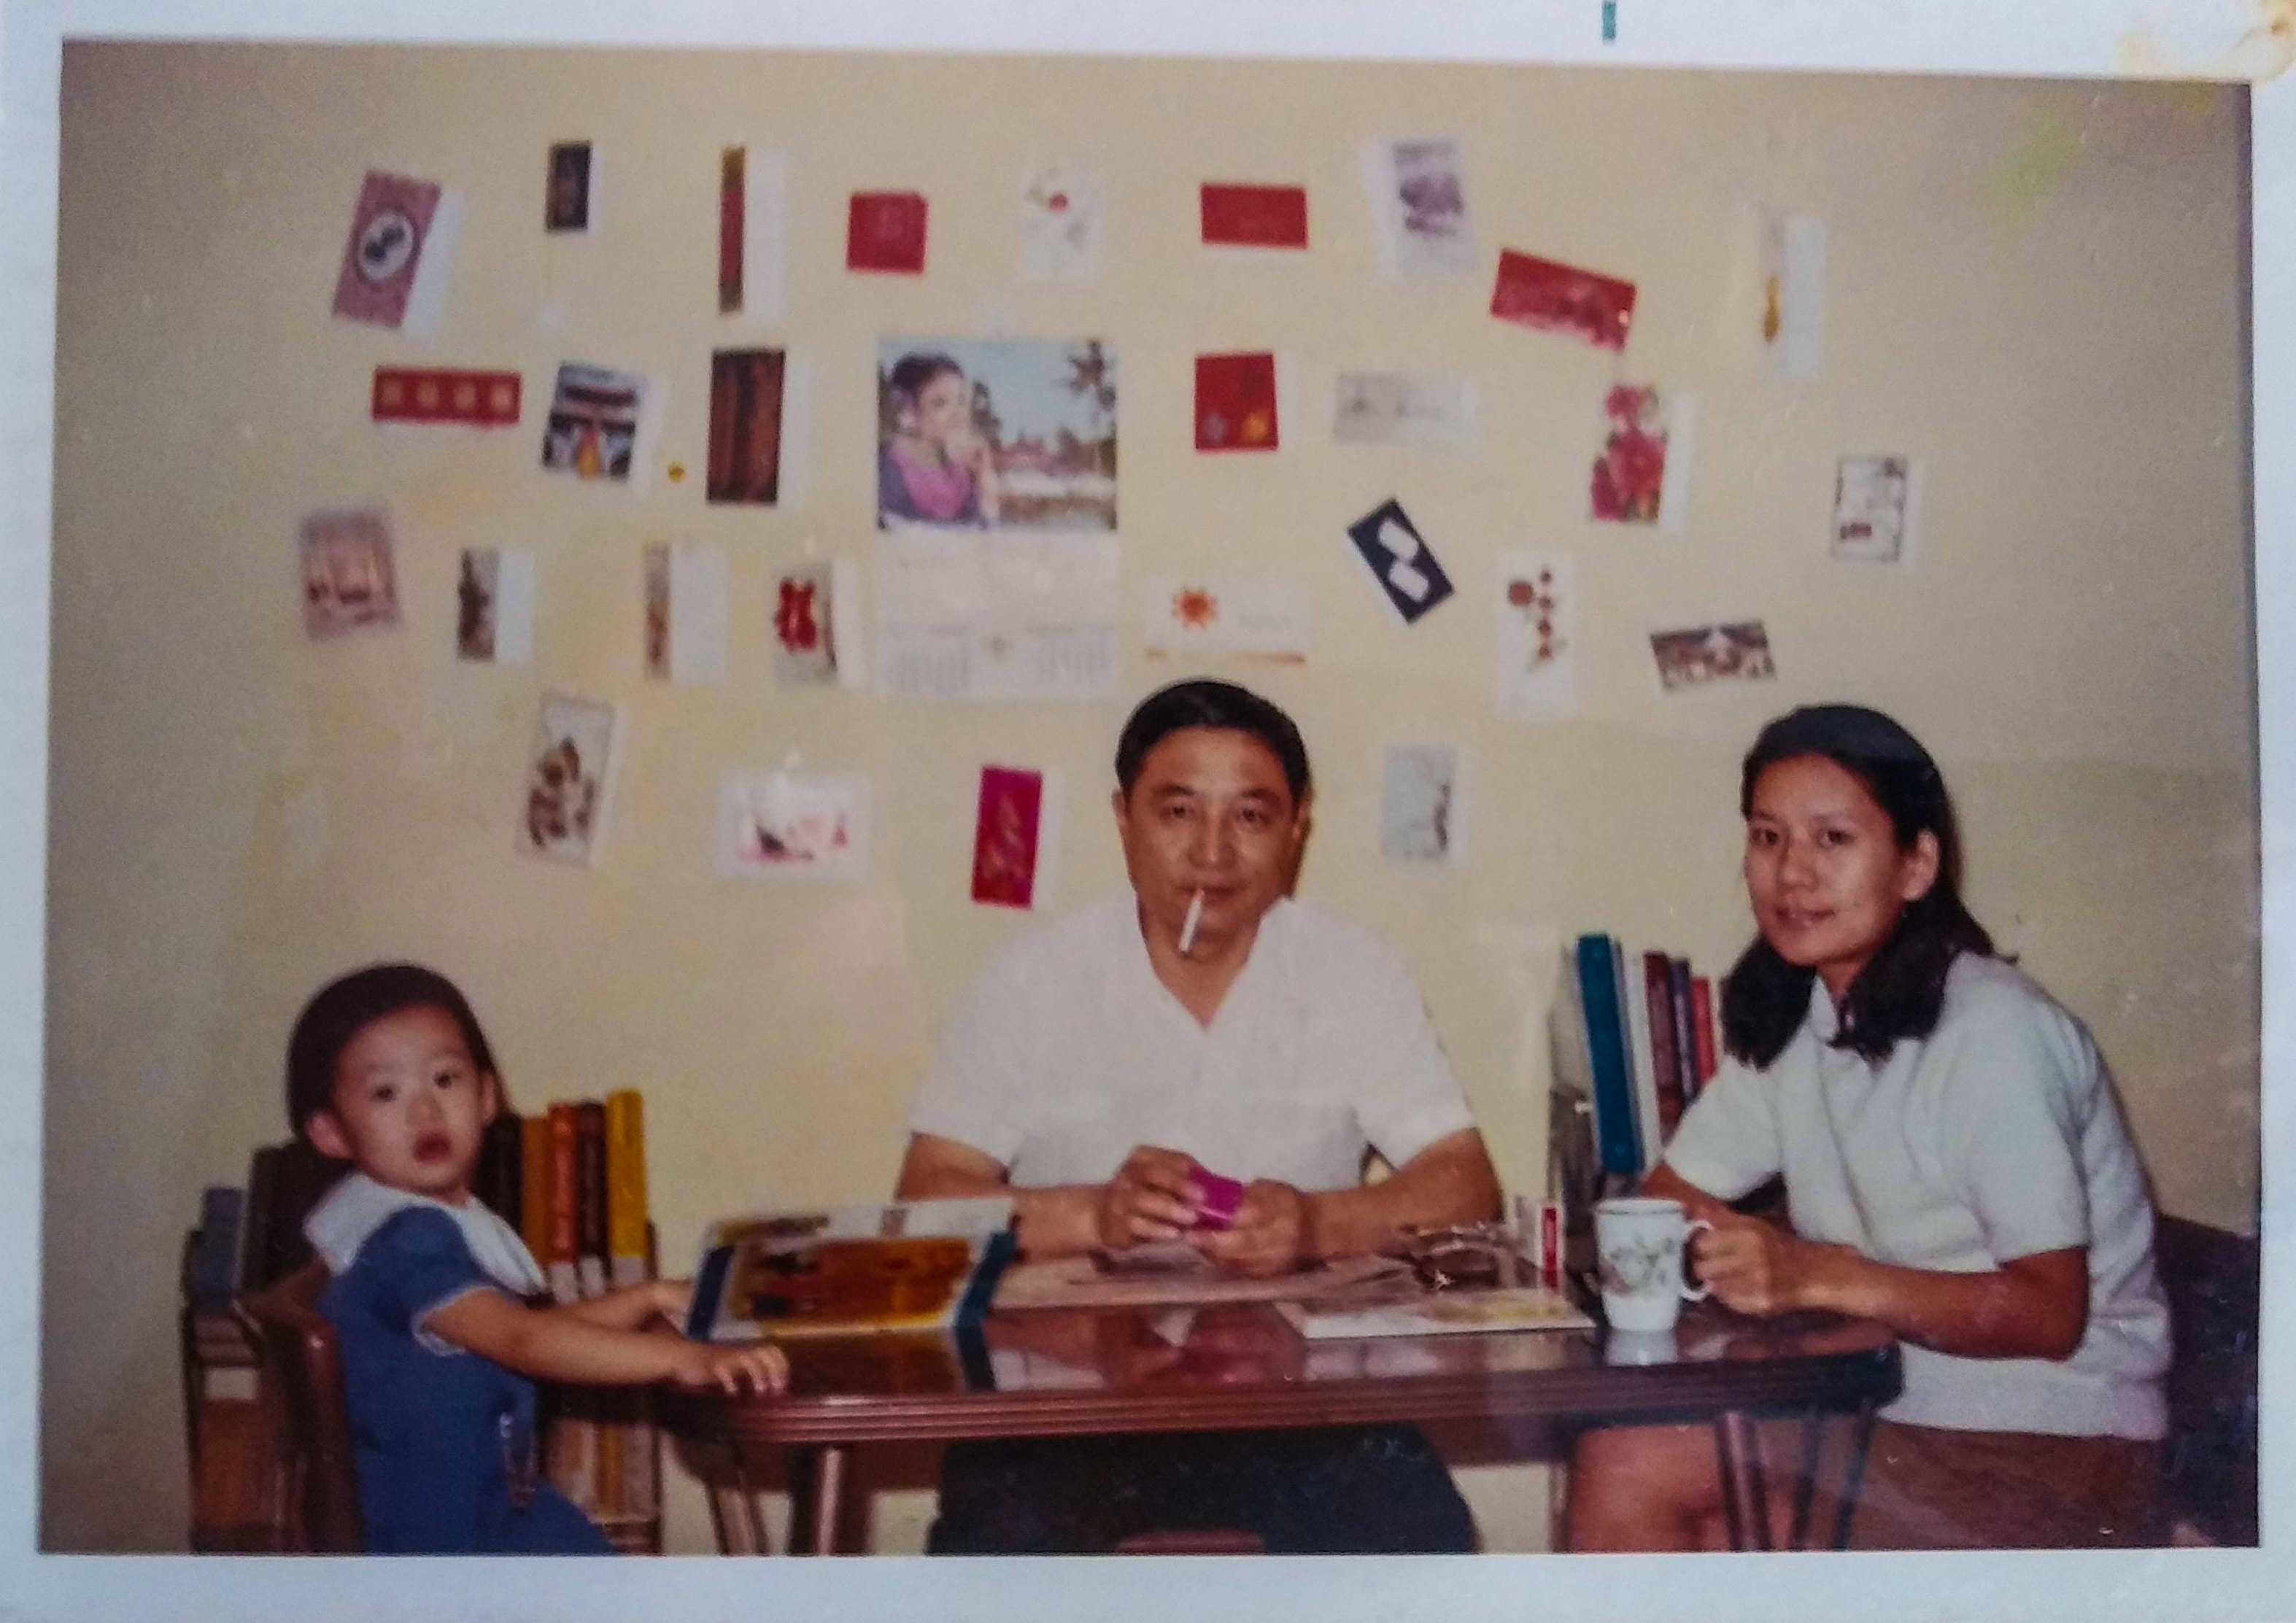 A woman (right) and a man (center) sit at a table at home with a baby (left). The man smokes a cigarette, the woman holds a white mug, and the baby holds open a children's book.